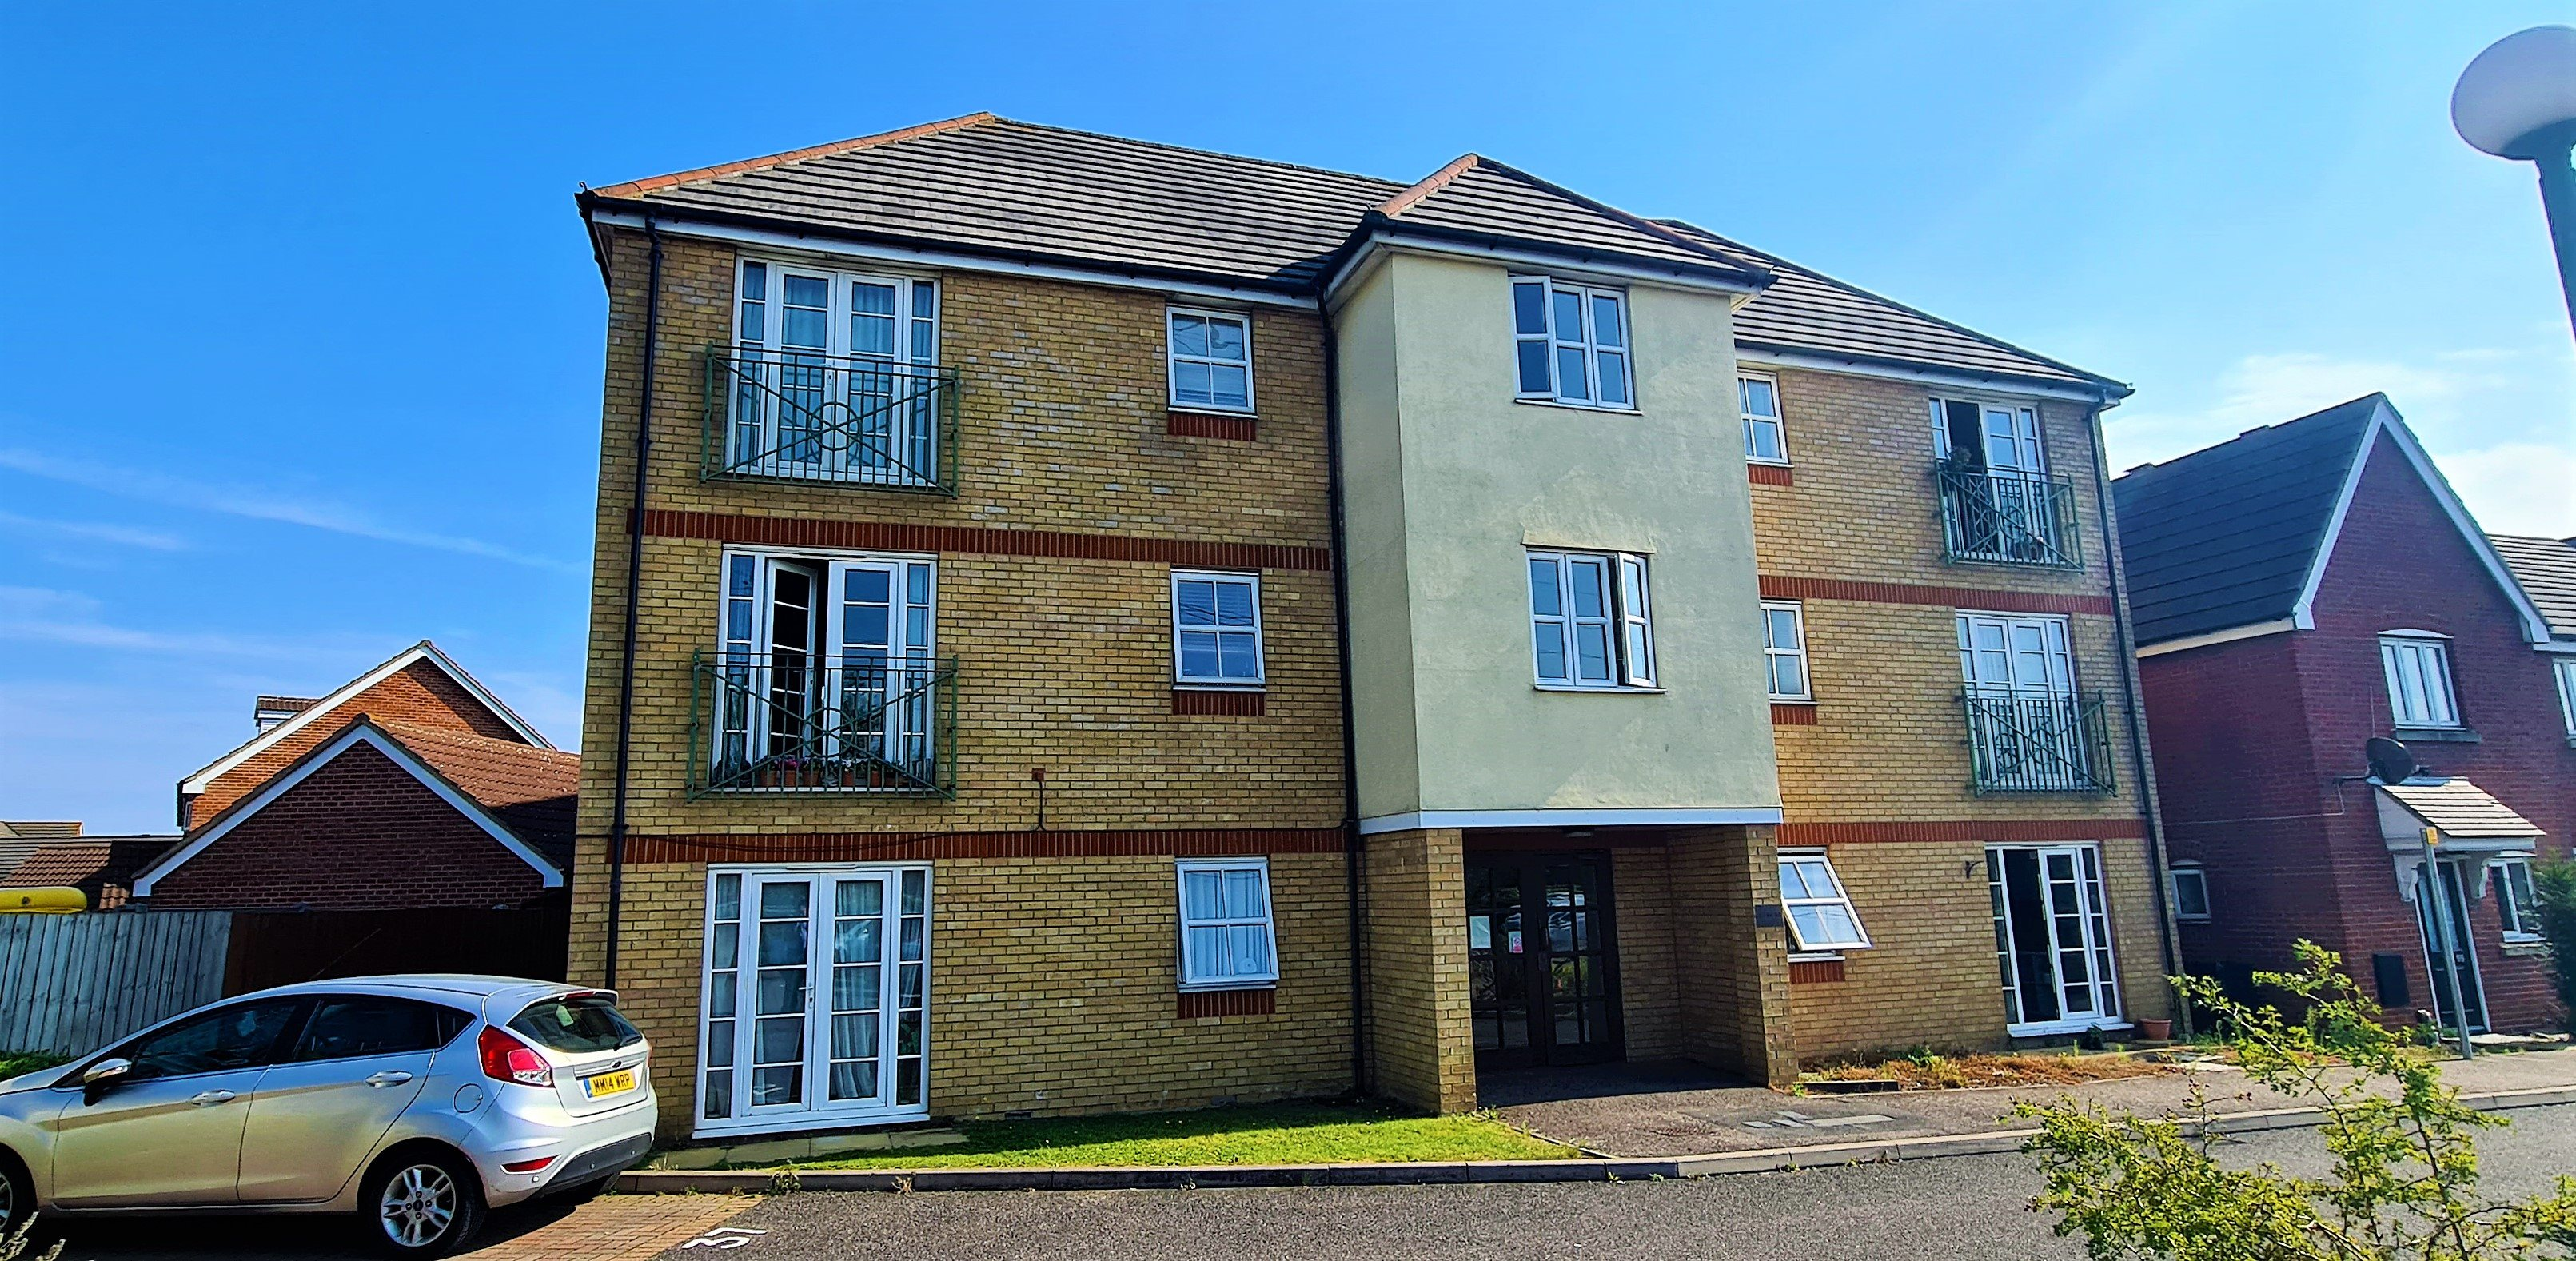 2 bed flat for sale in Rawlyn Close, Chafford Hundred - Property Image 1